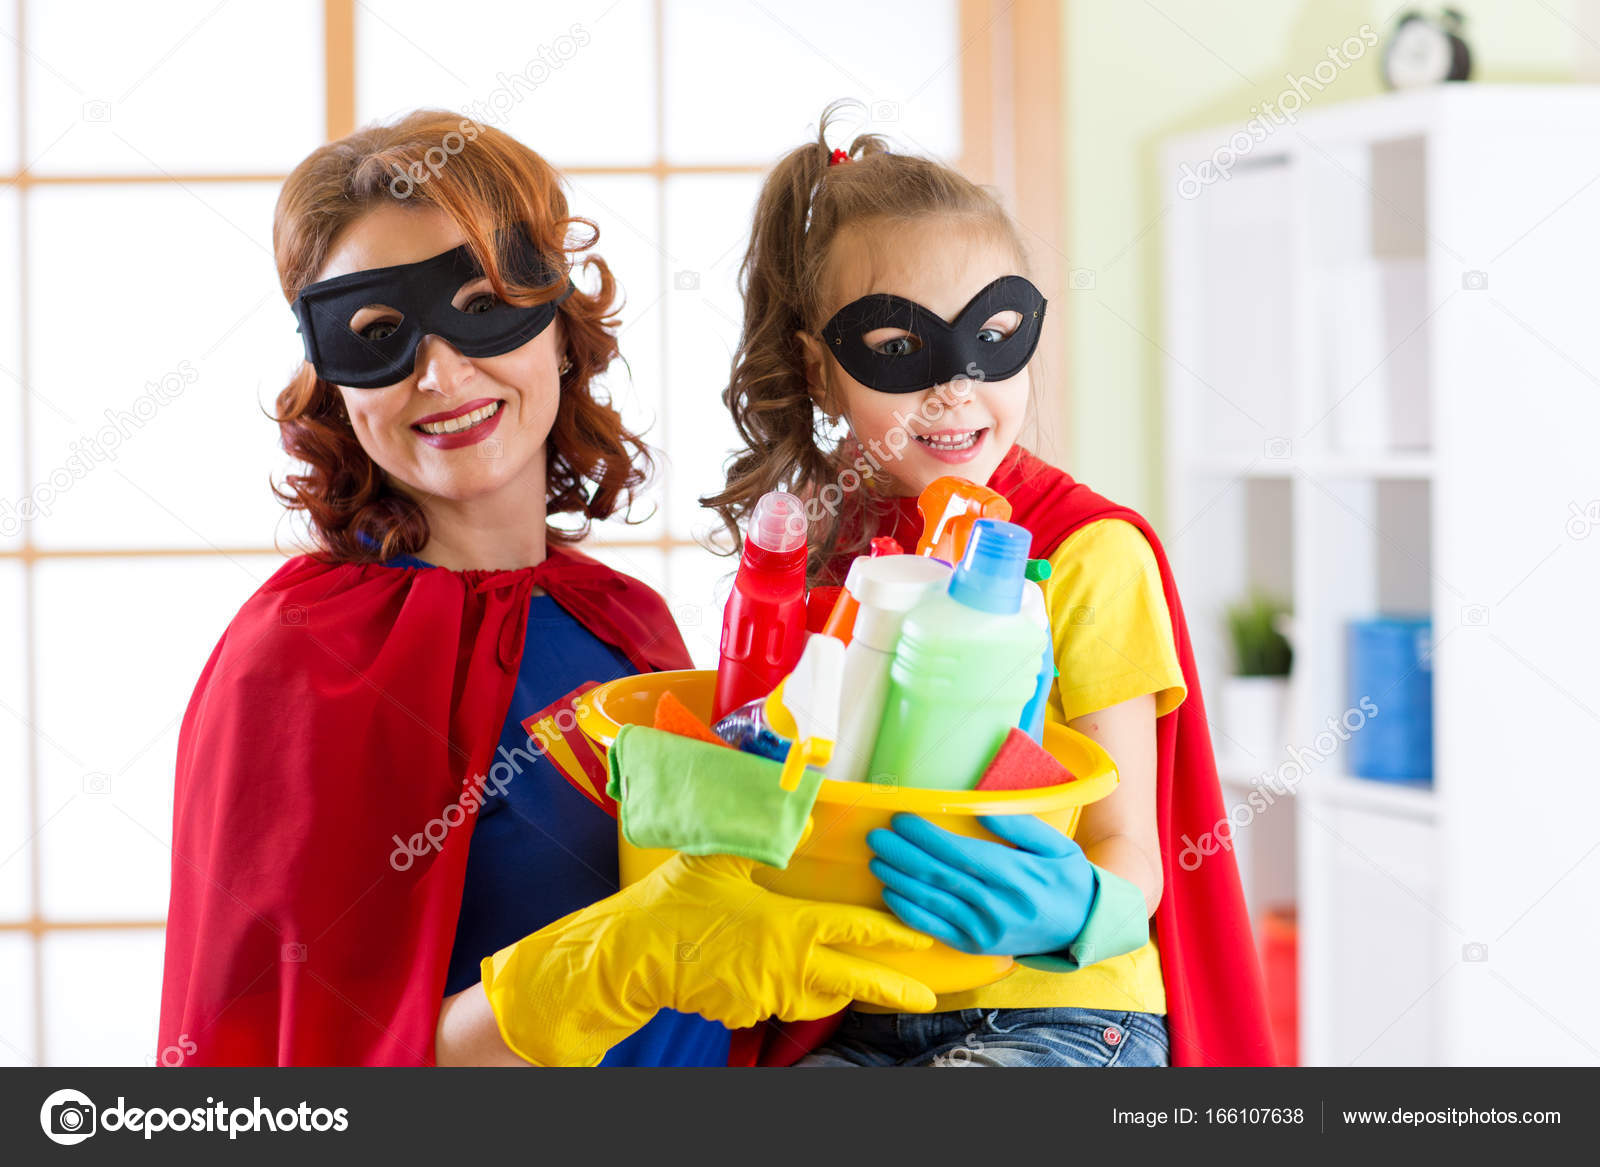 Delightful Woman And Her Child Daughter In Superhero Costumes. Mom And Kid Ready To  House Cleaning. Housework And Housekeeping. U2014 Photo By Oksun70